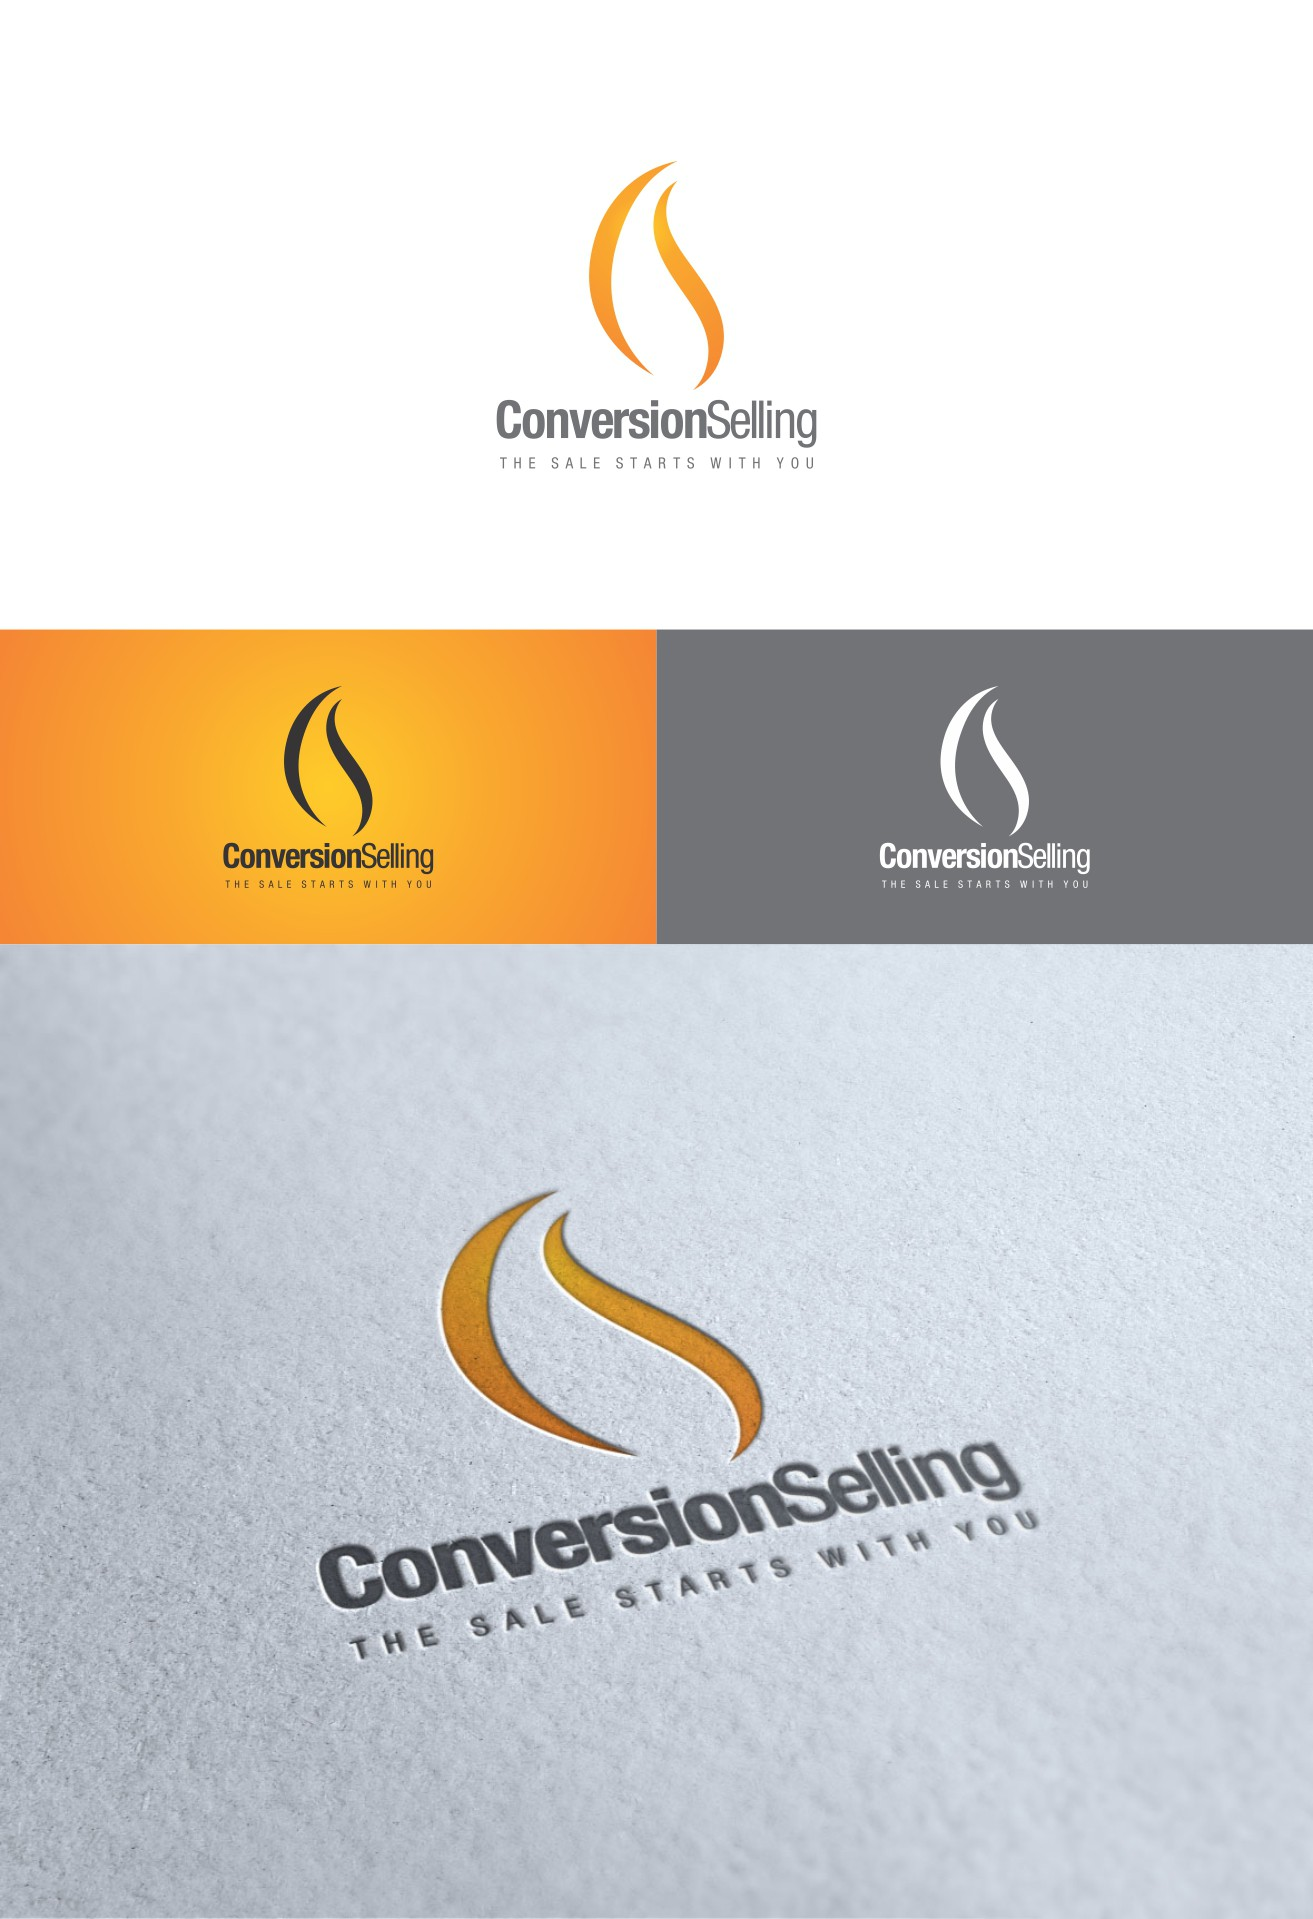 New logo wanted for Conversion Selling